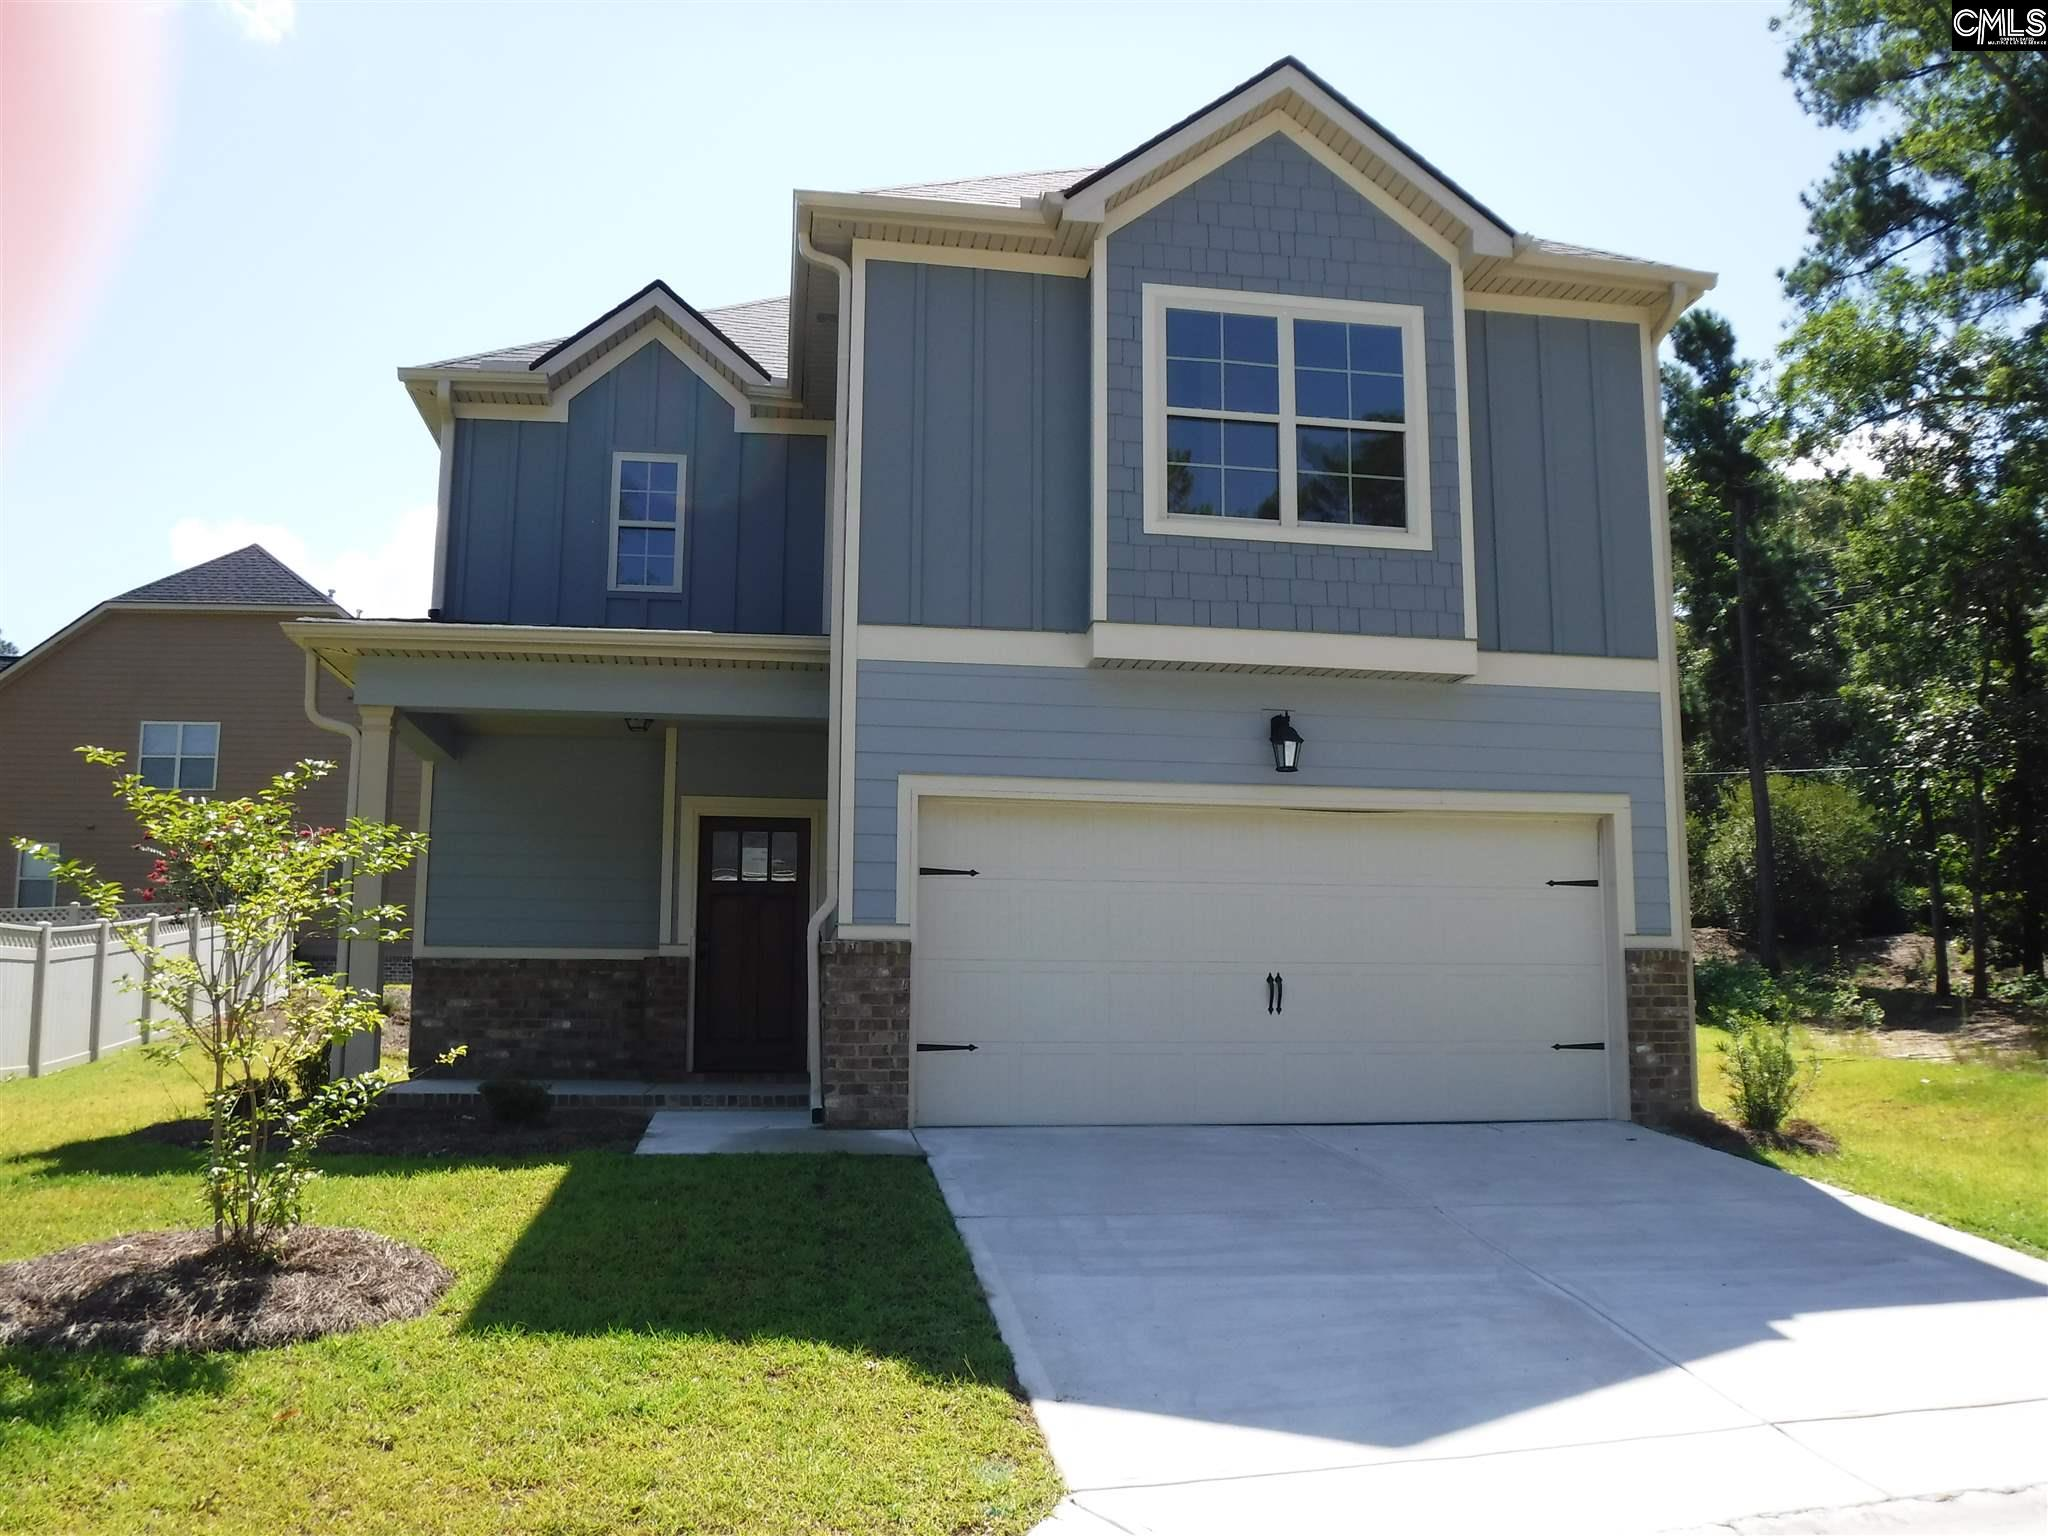 89 Dogwood Cottage #42 Blythewood, SC 29016